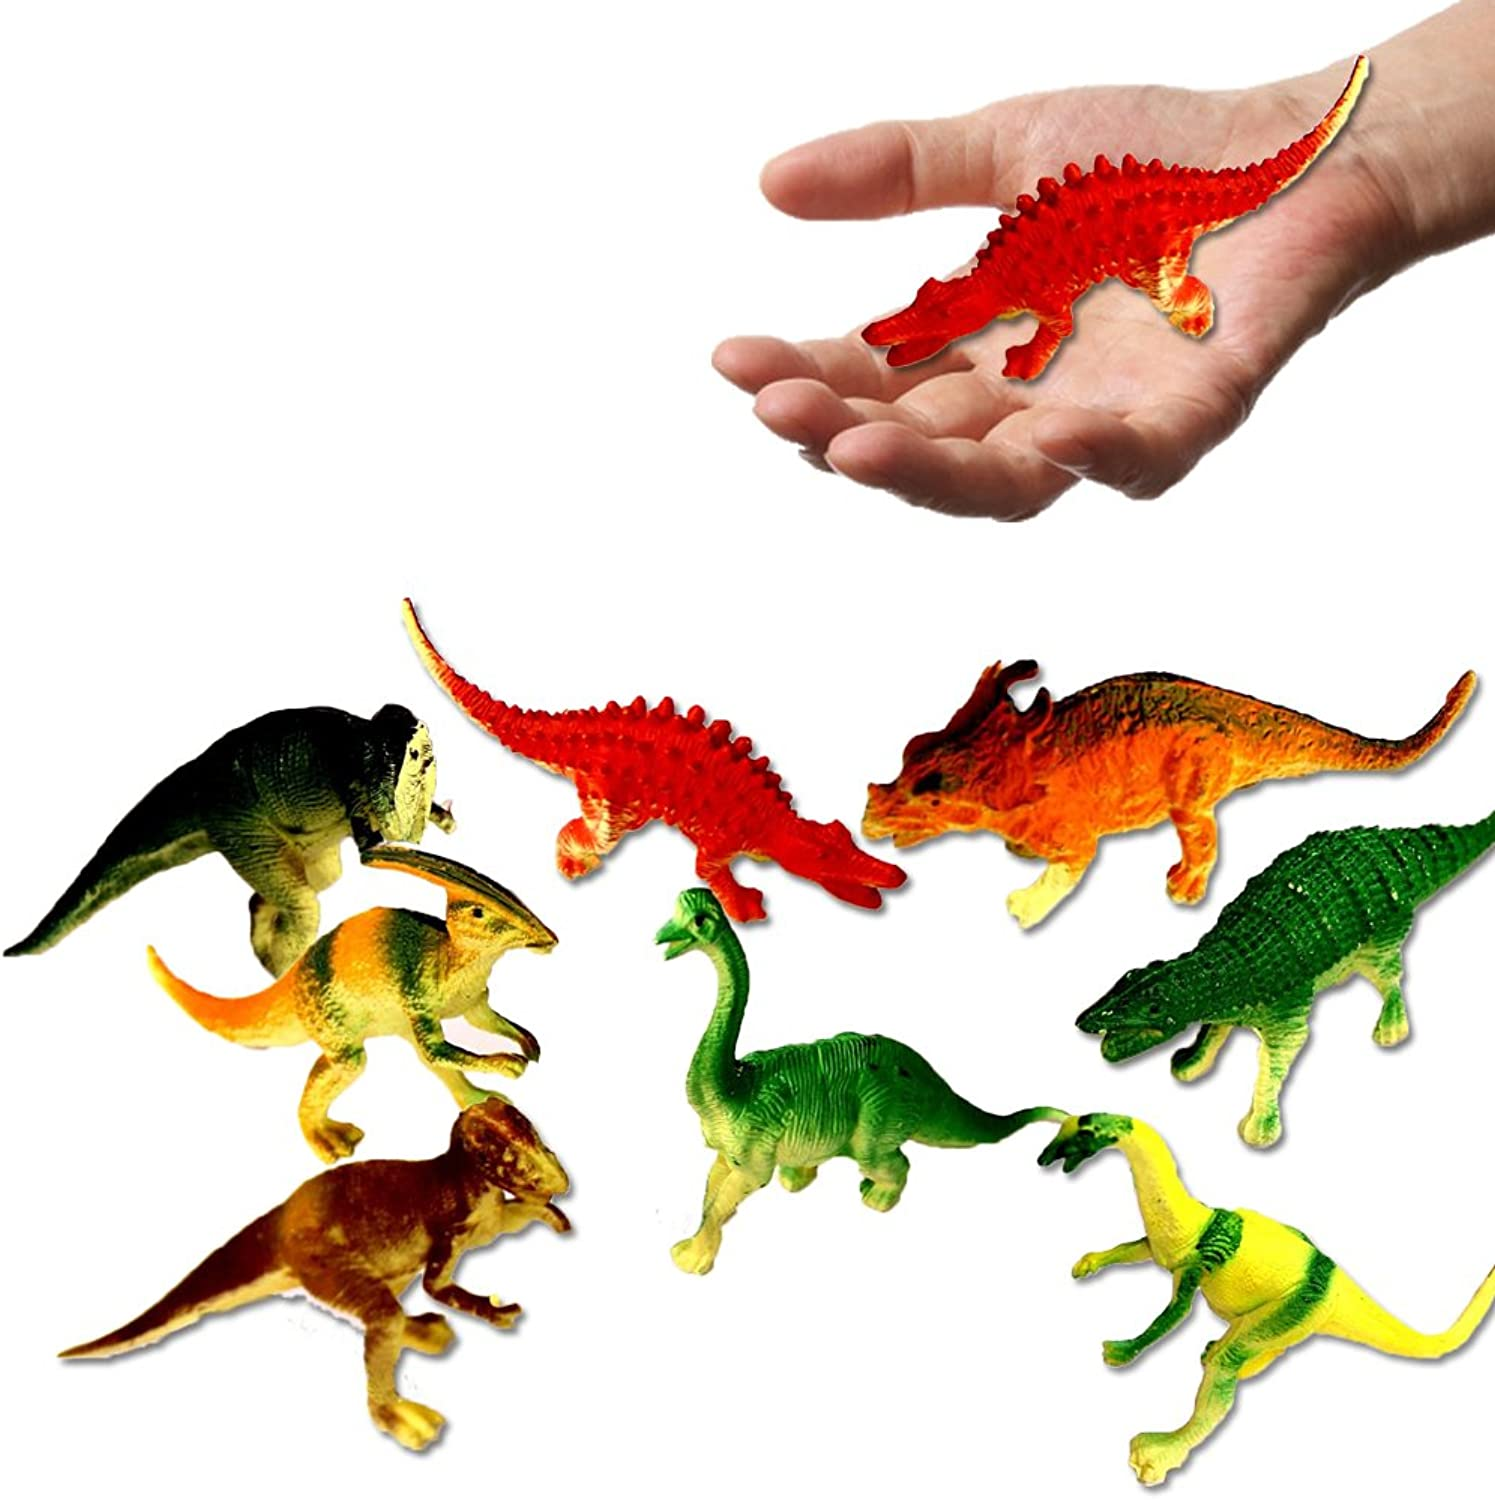 Toy Cubby Educational Large Realistic Dinosaurs  4  5 Dinosaurs Figures  24 Pcs. by Toy Cubby